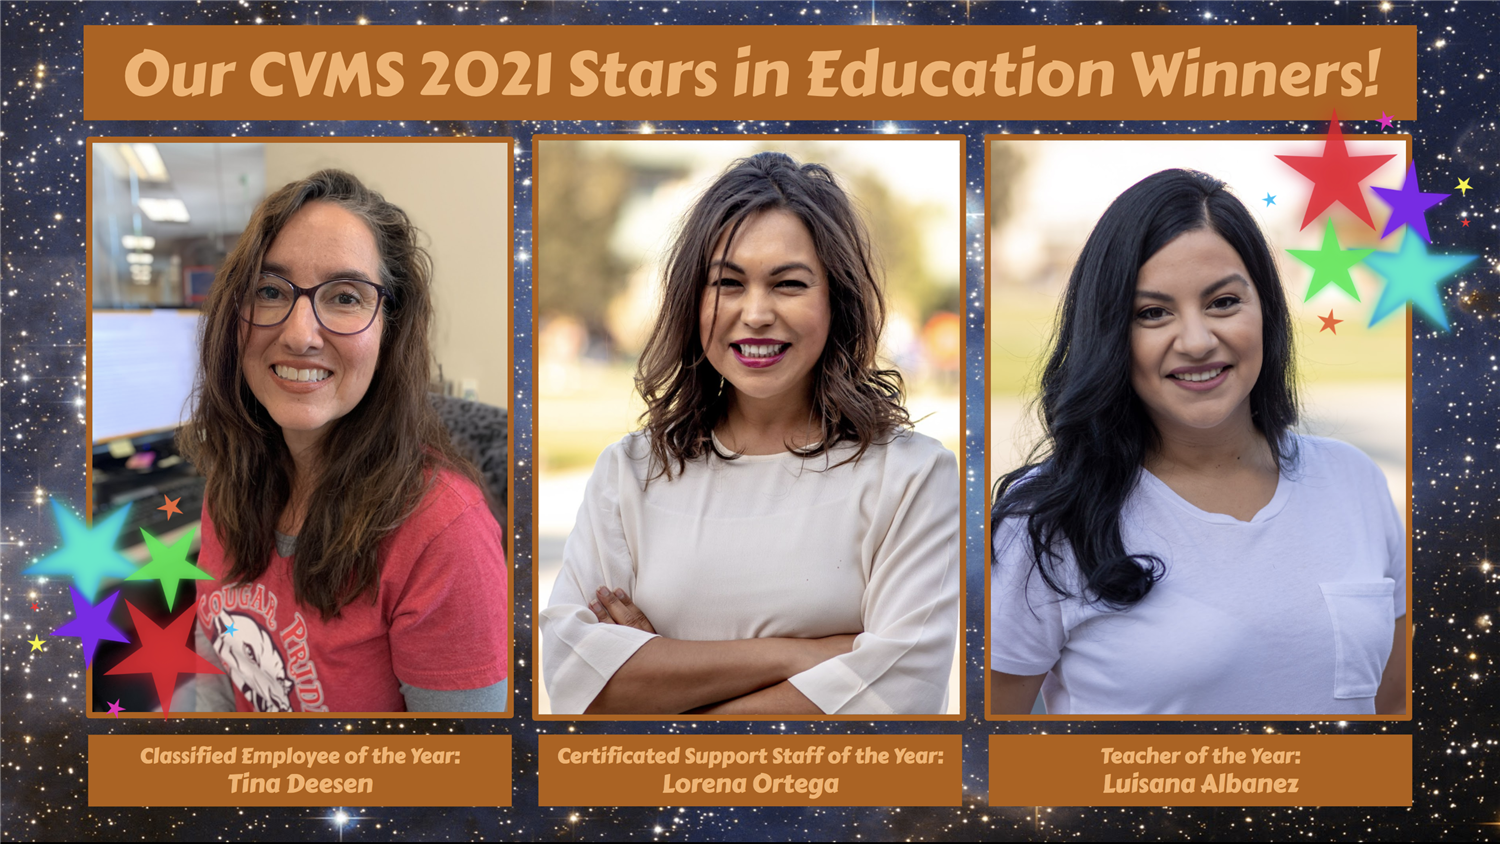 Our CVMS 2021 🌟 Stars in Education 🌟 : Tina Deesen, Lorena Ortega, & Luisana Albanez!! 🎉